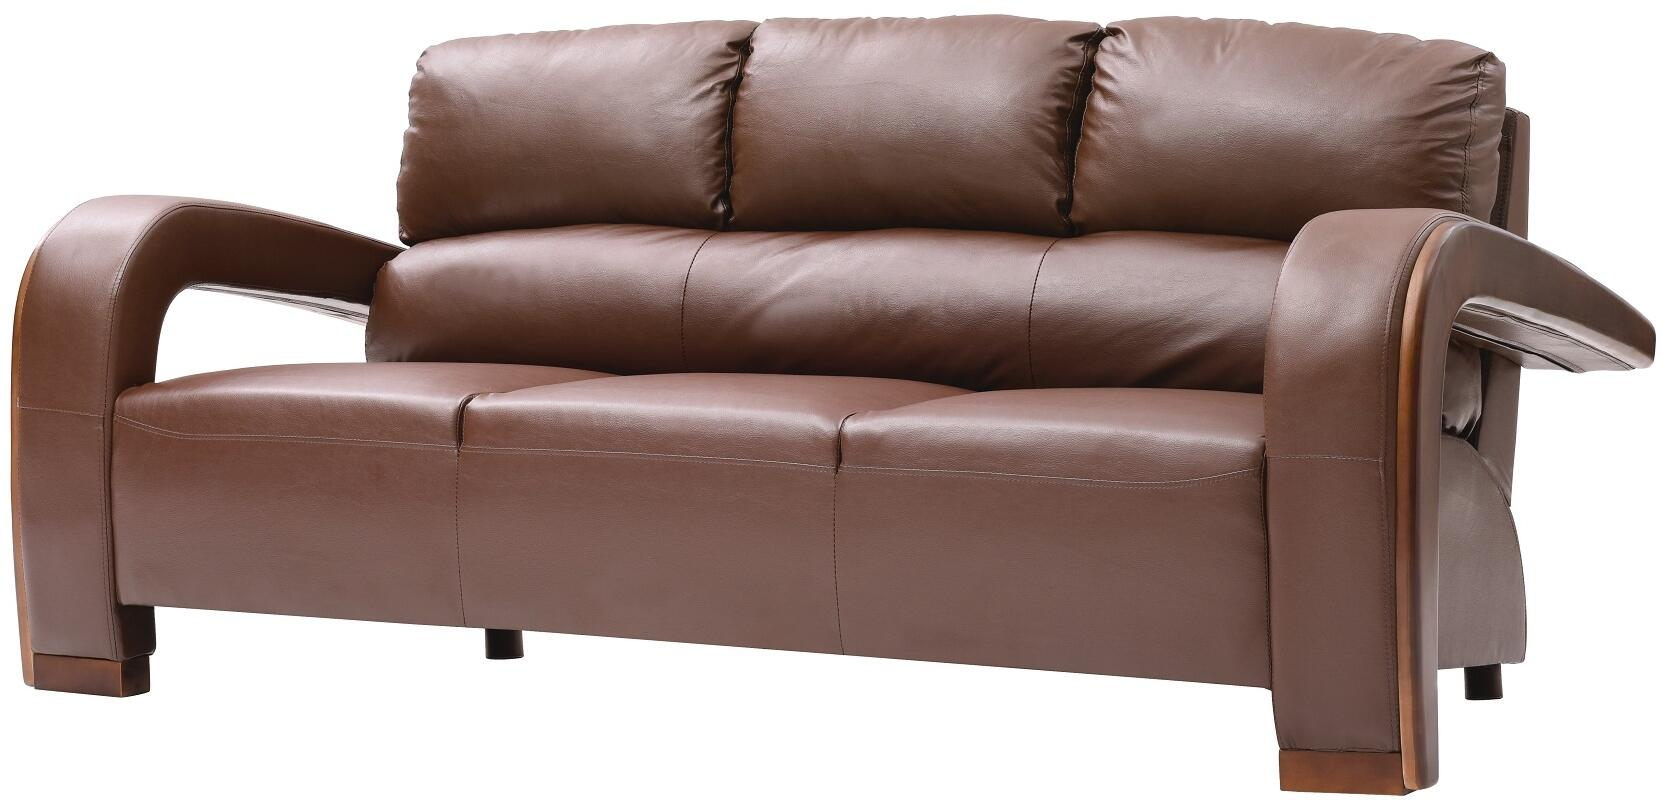 Glory furniture g420s g400 series faux leather sofa for Furniture x connection